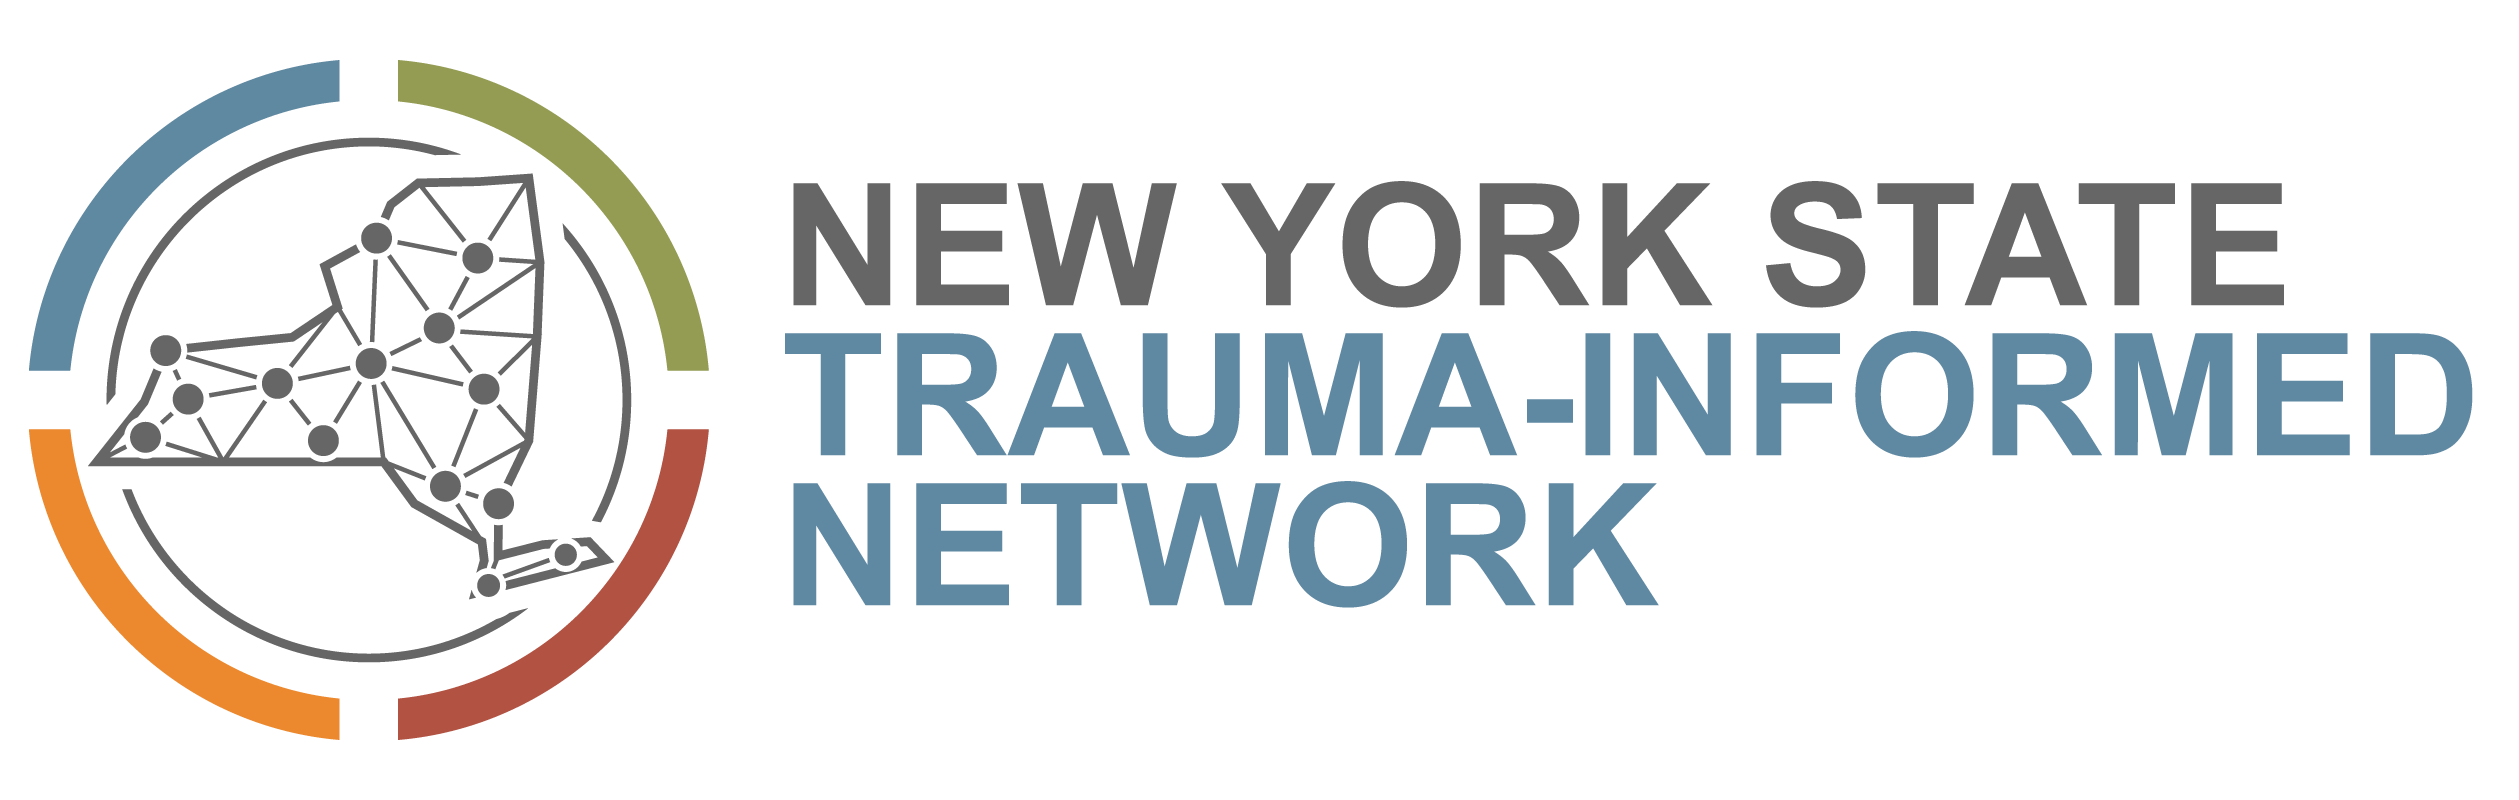 Trauma Informed New York